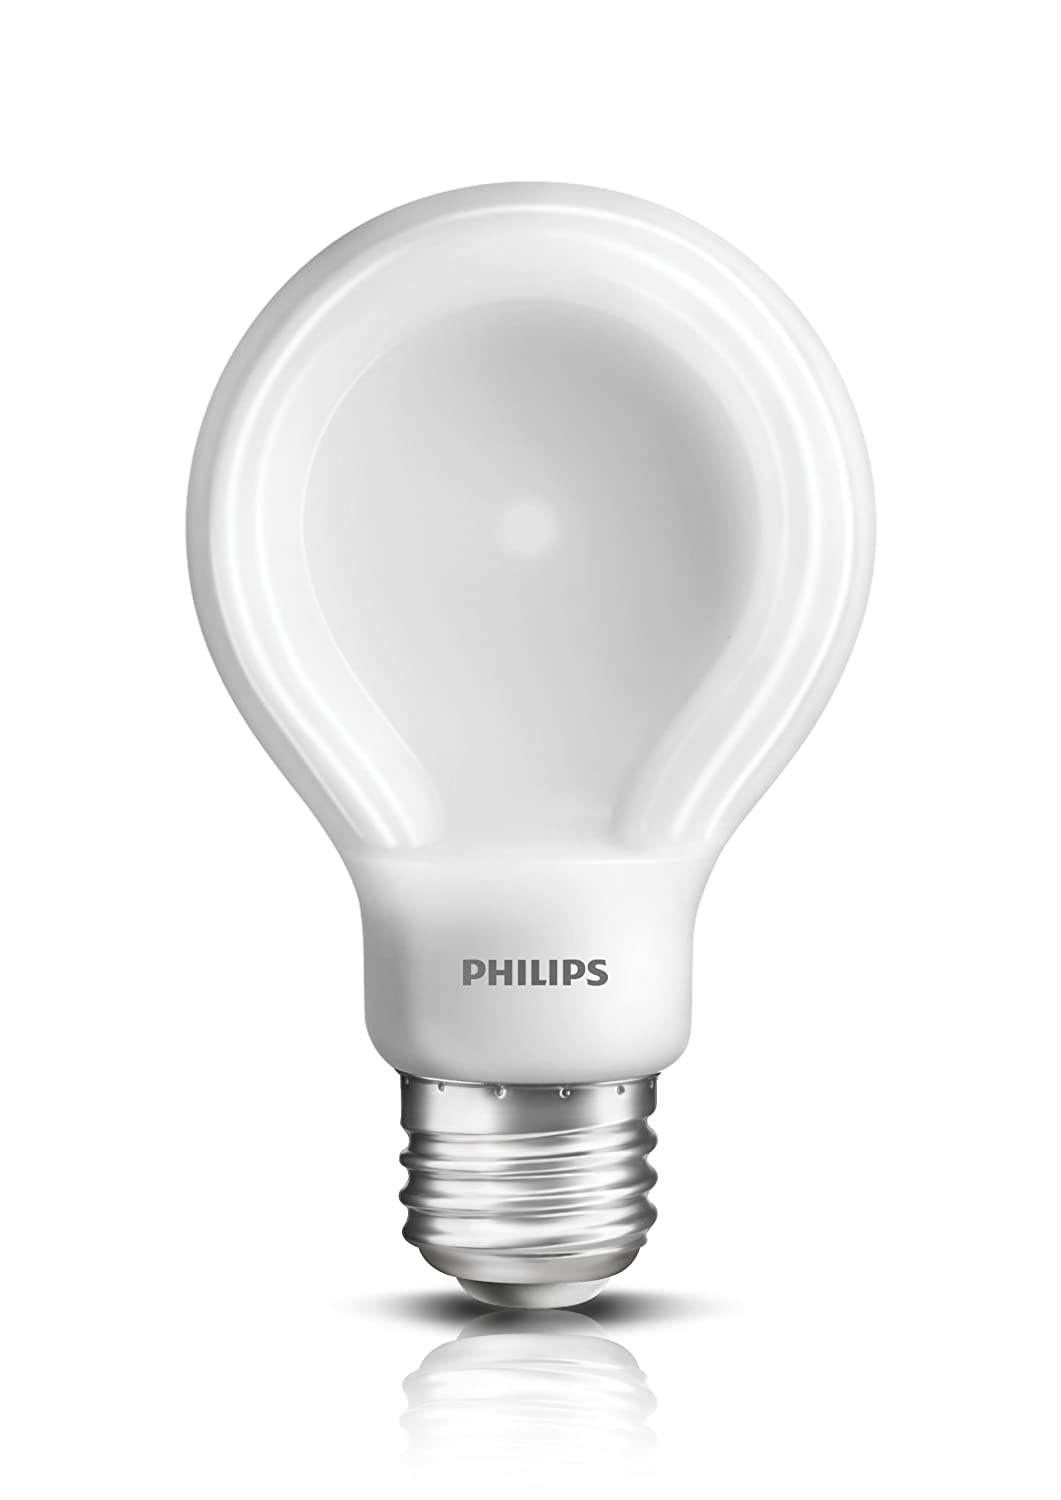 Philips 452978 60 watt equivalent slimstyle a19 led light bulb philips 452978 60 watt equivalent slimstyle a19 led light bulb soft white dimmable amazon parisarafo Gallery